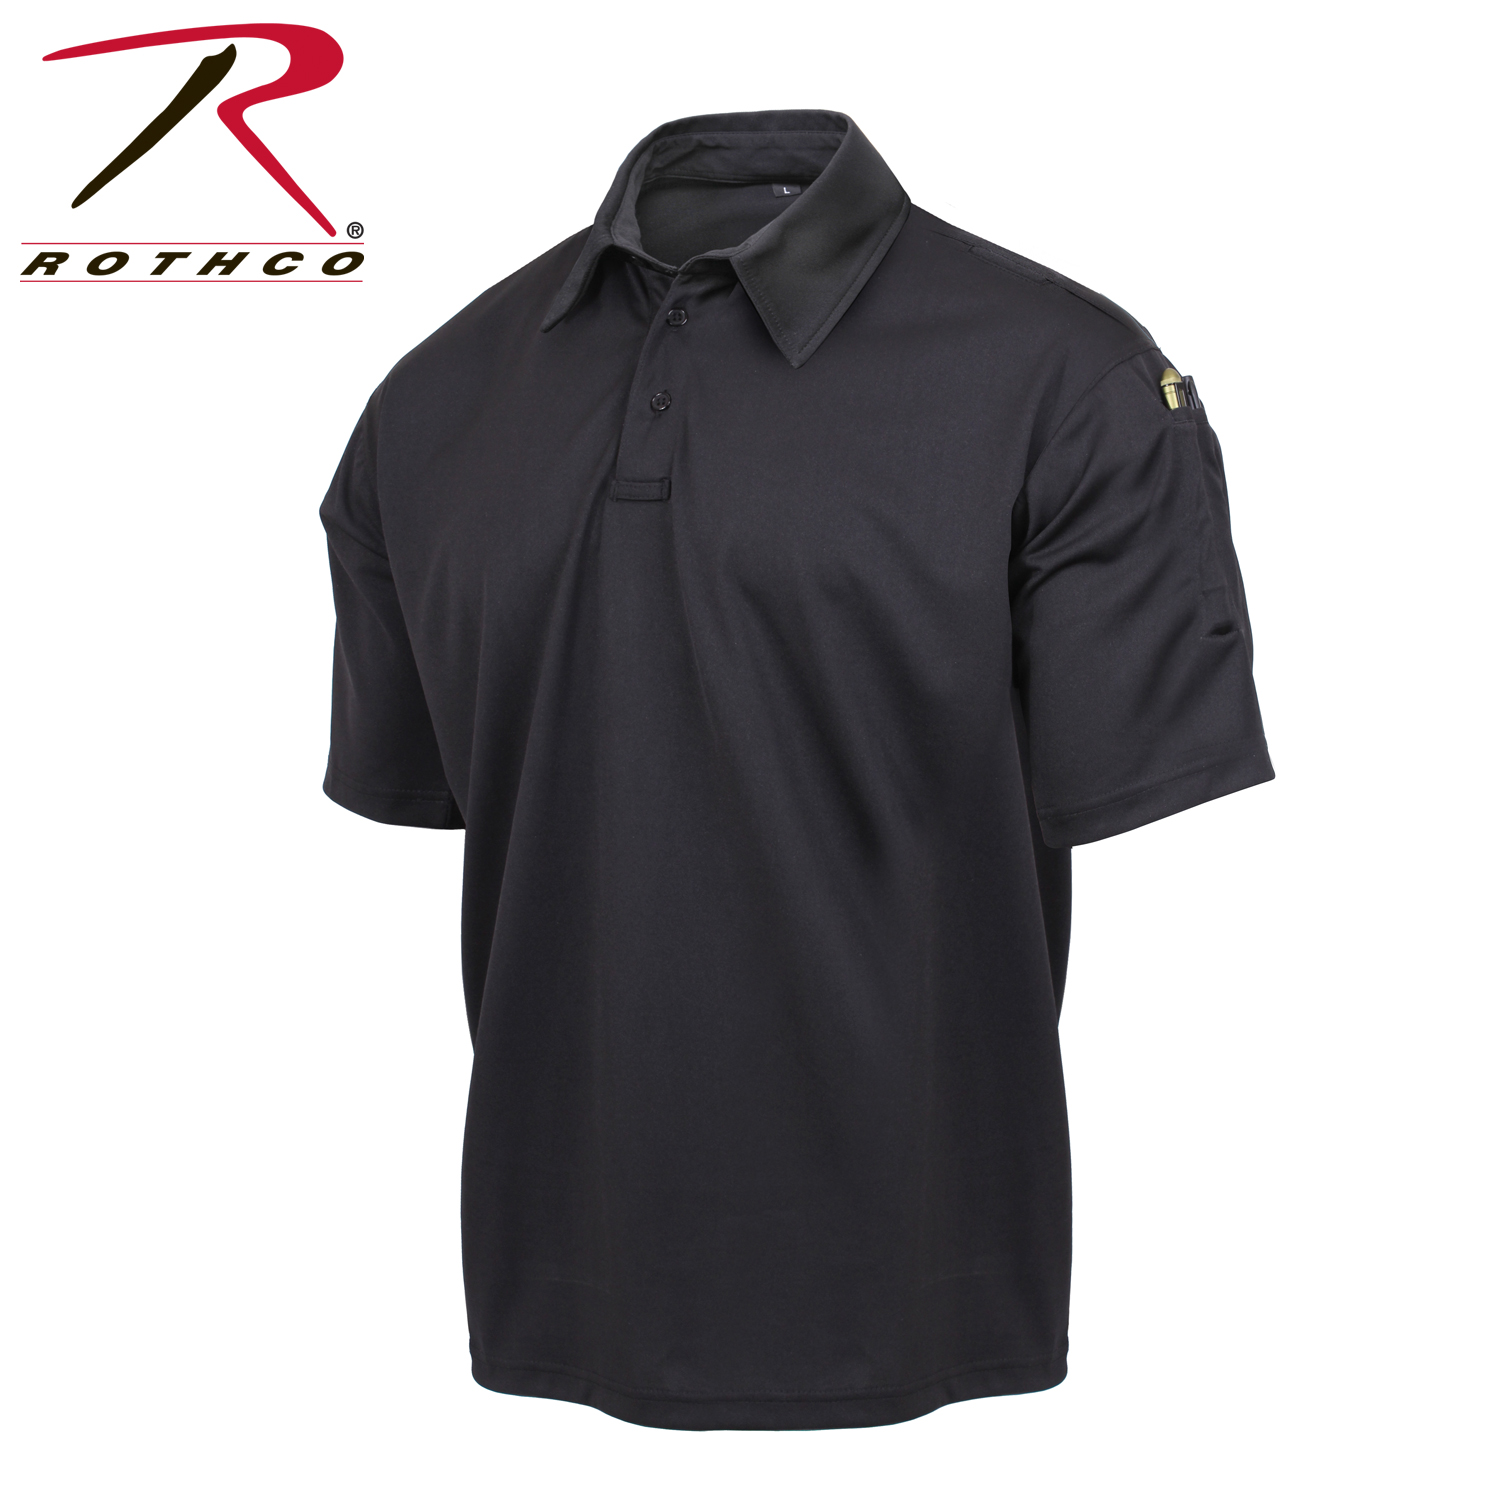 323cf01c57db Rothco Tactical Performance Polo Shirt